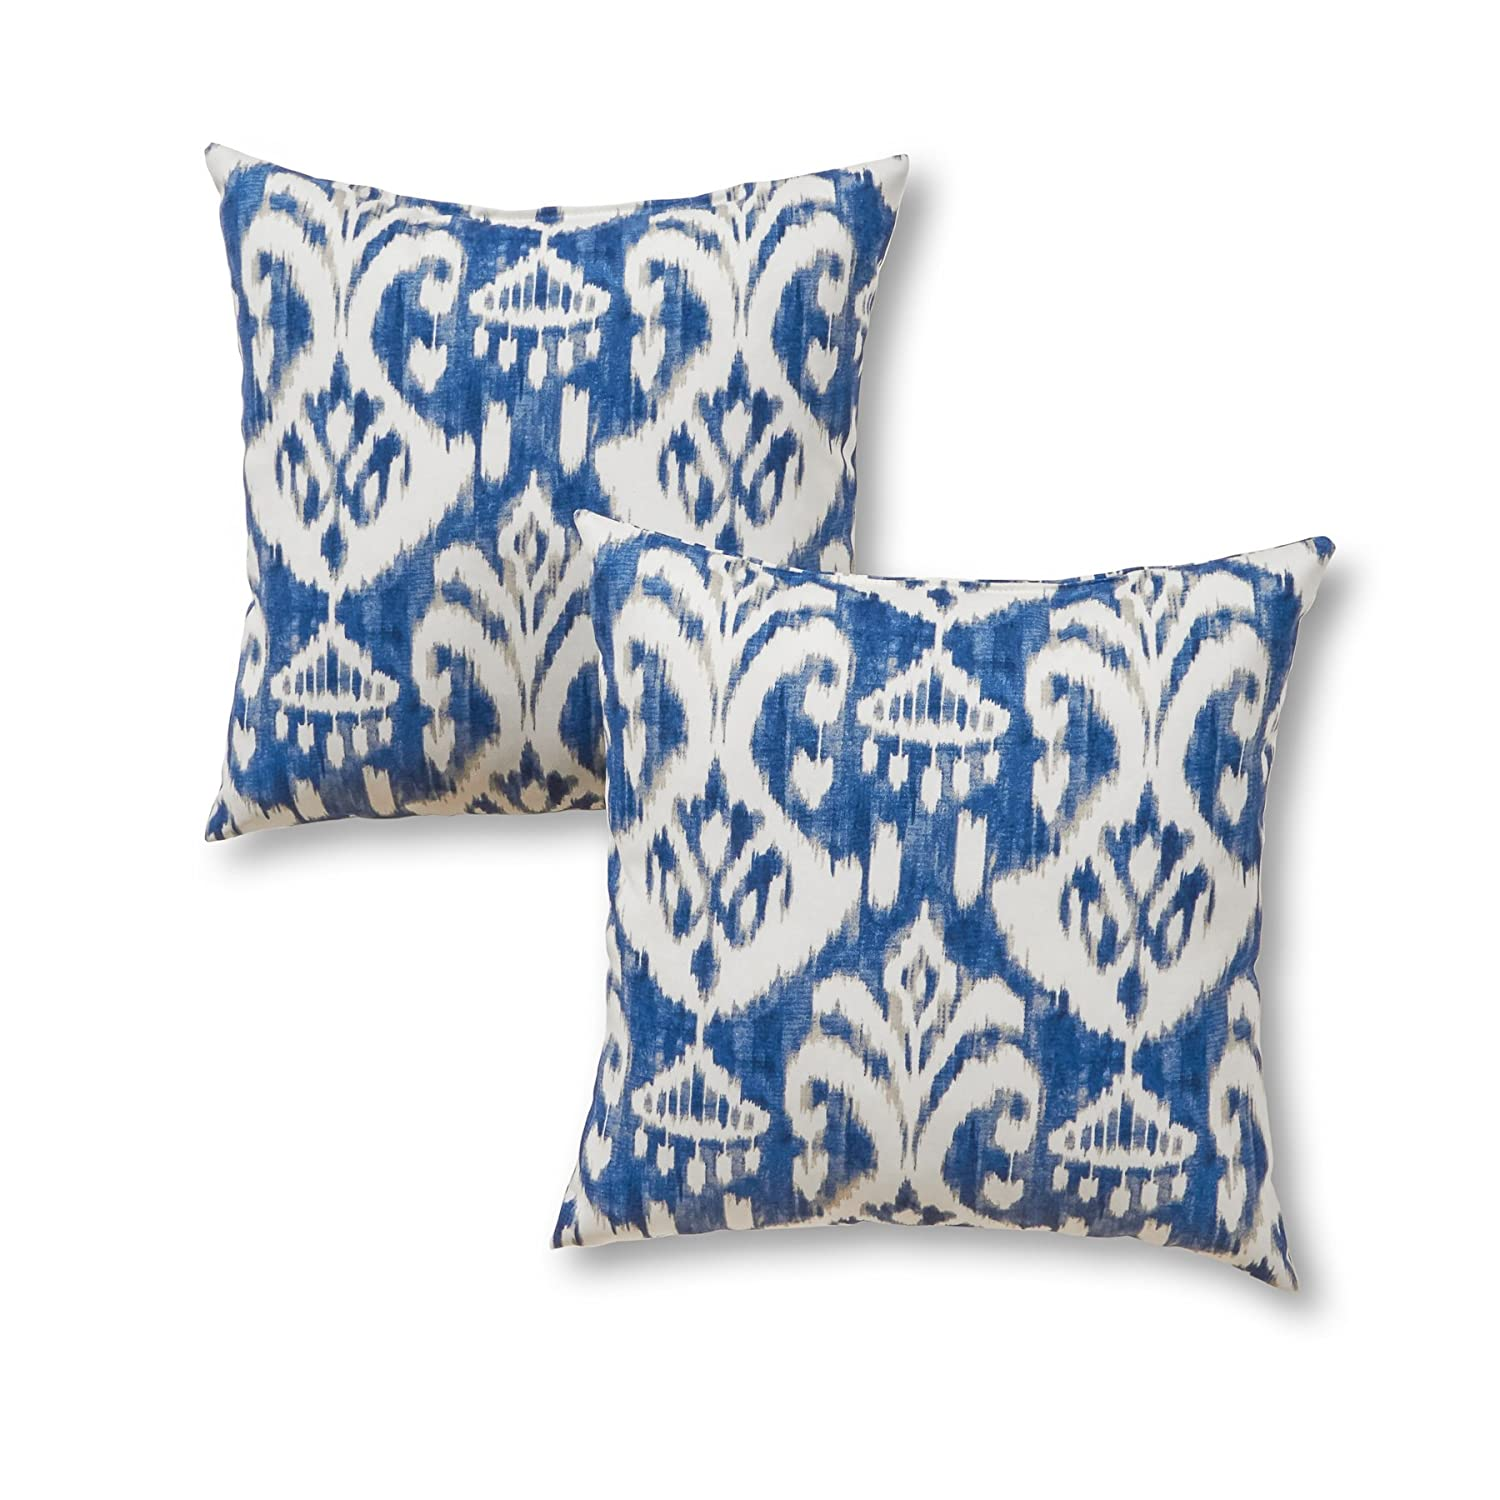 Greendale Home Fashions 17 Outdoor Accent Pillows in Coastal Ikat Set of 2 , Azule